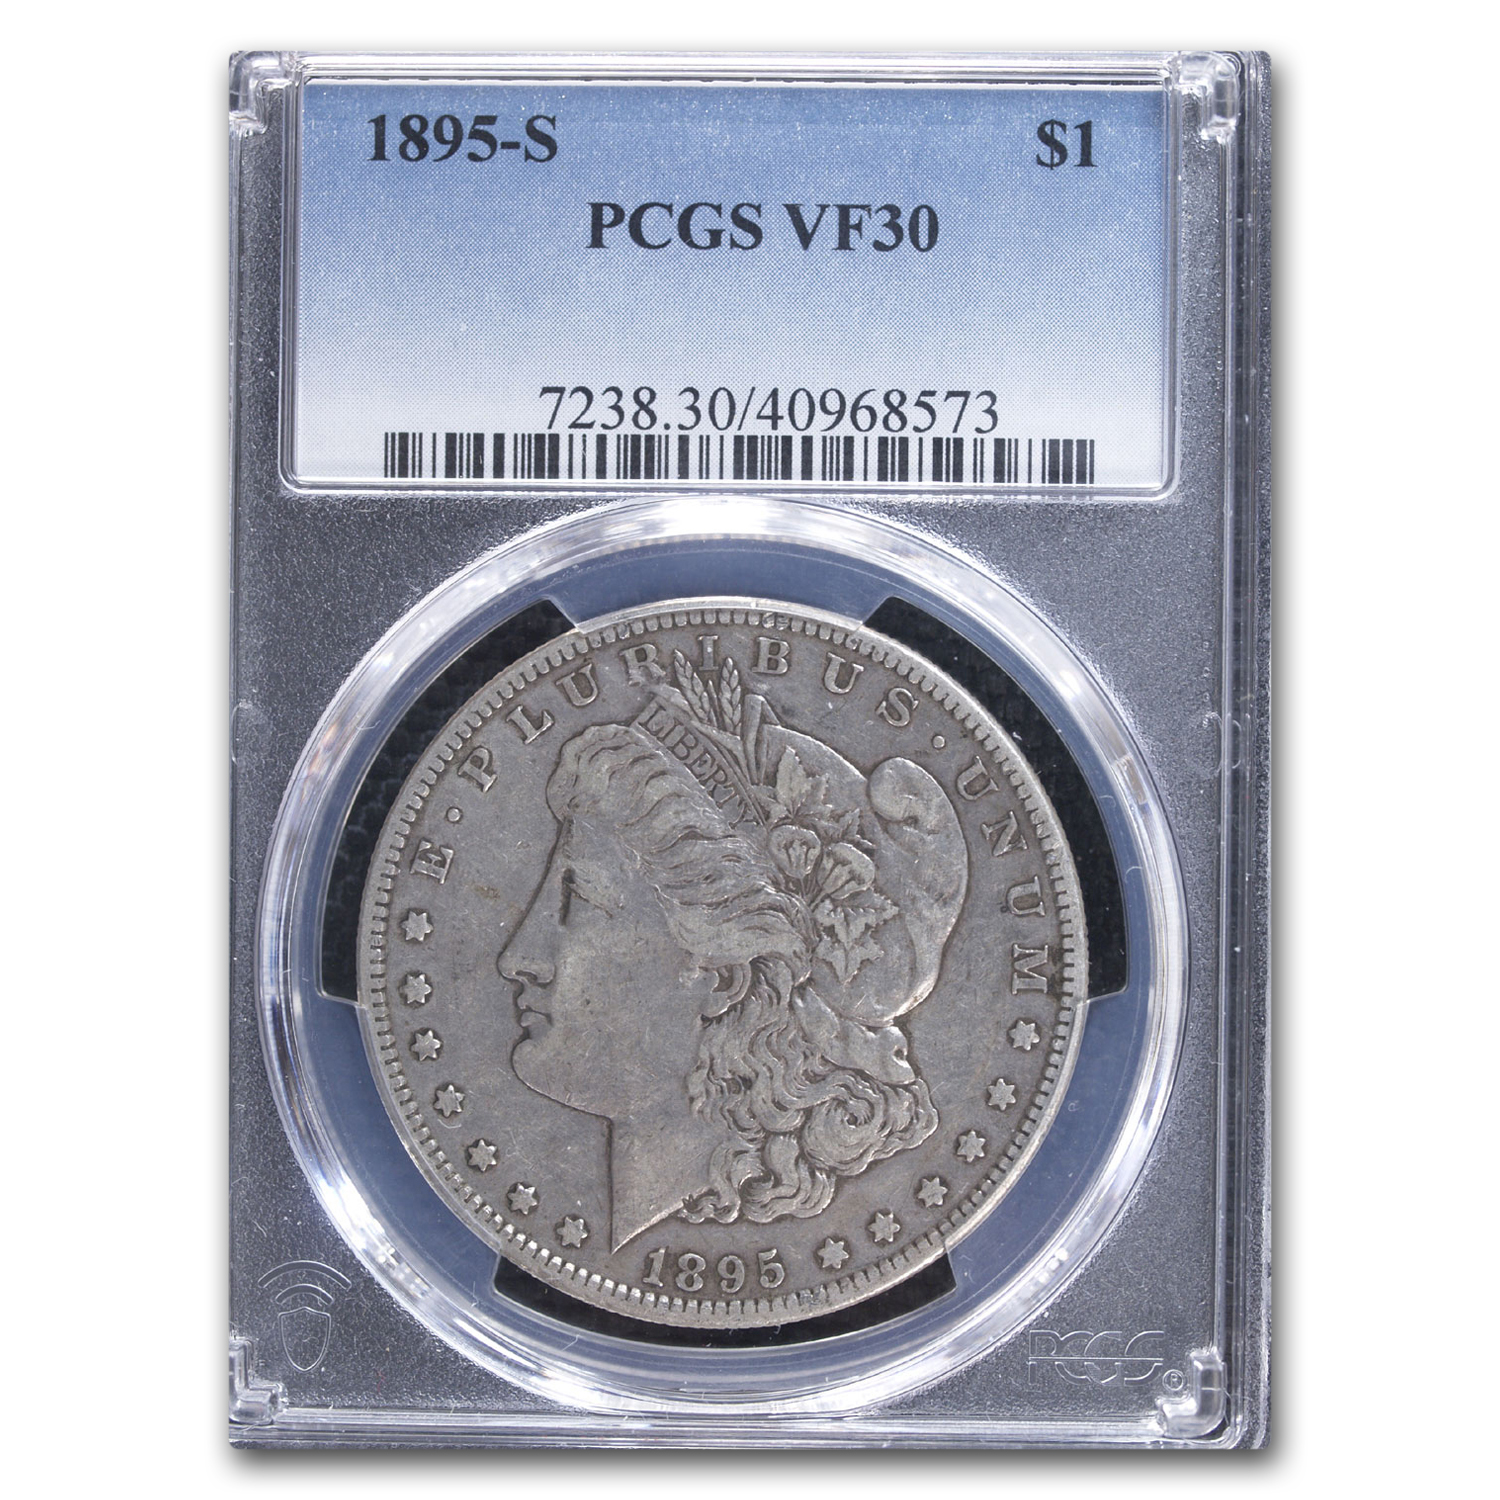 1895-S Morgan Dollar VF-30 PCGS